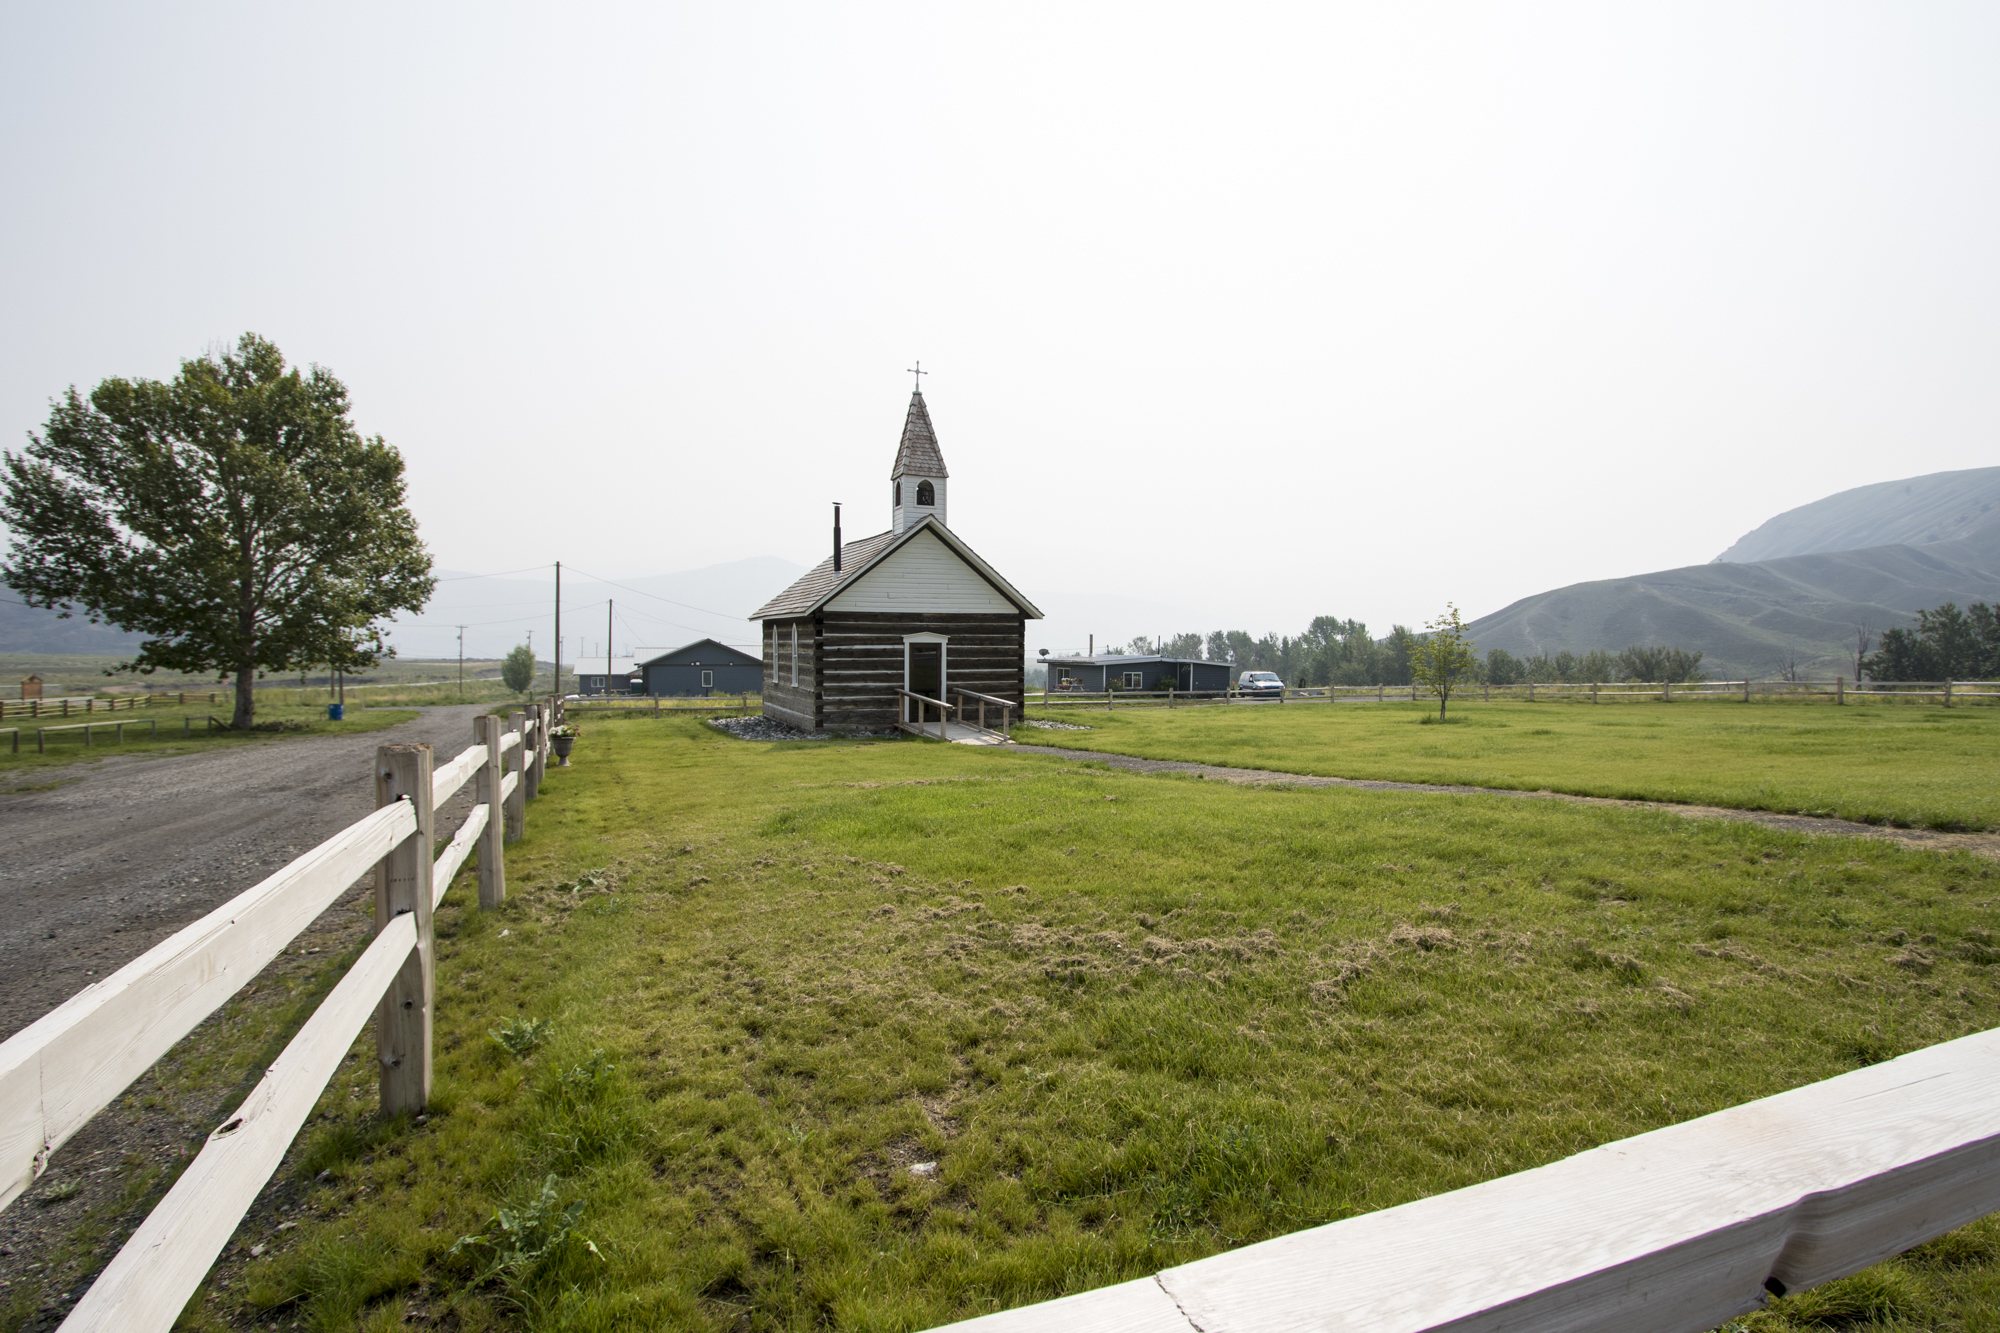 This church on the Ashcroft Indian Band reserve was one of the few things left untouched by flames in 2017. Today, grass around the historic building signals regrowth in the community. (Tina Lovgreen/CBC)